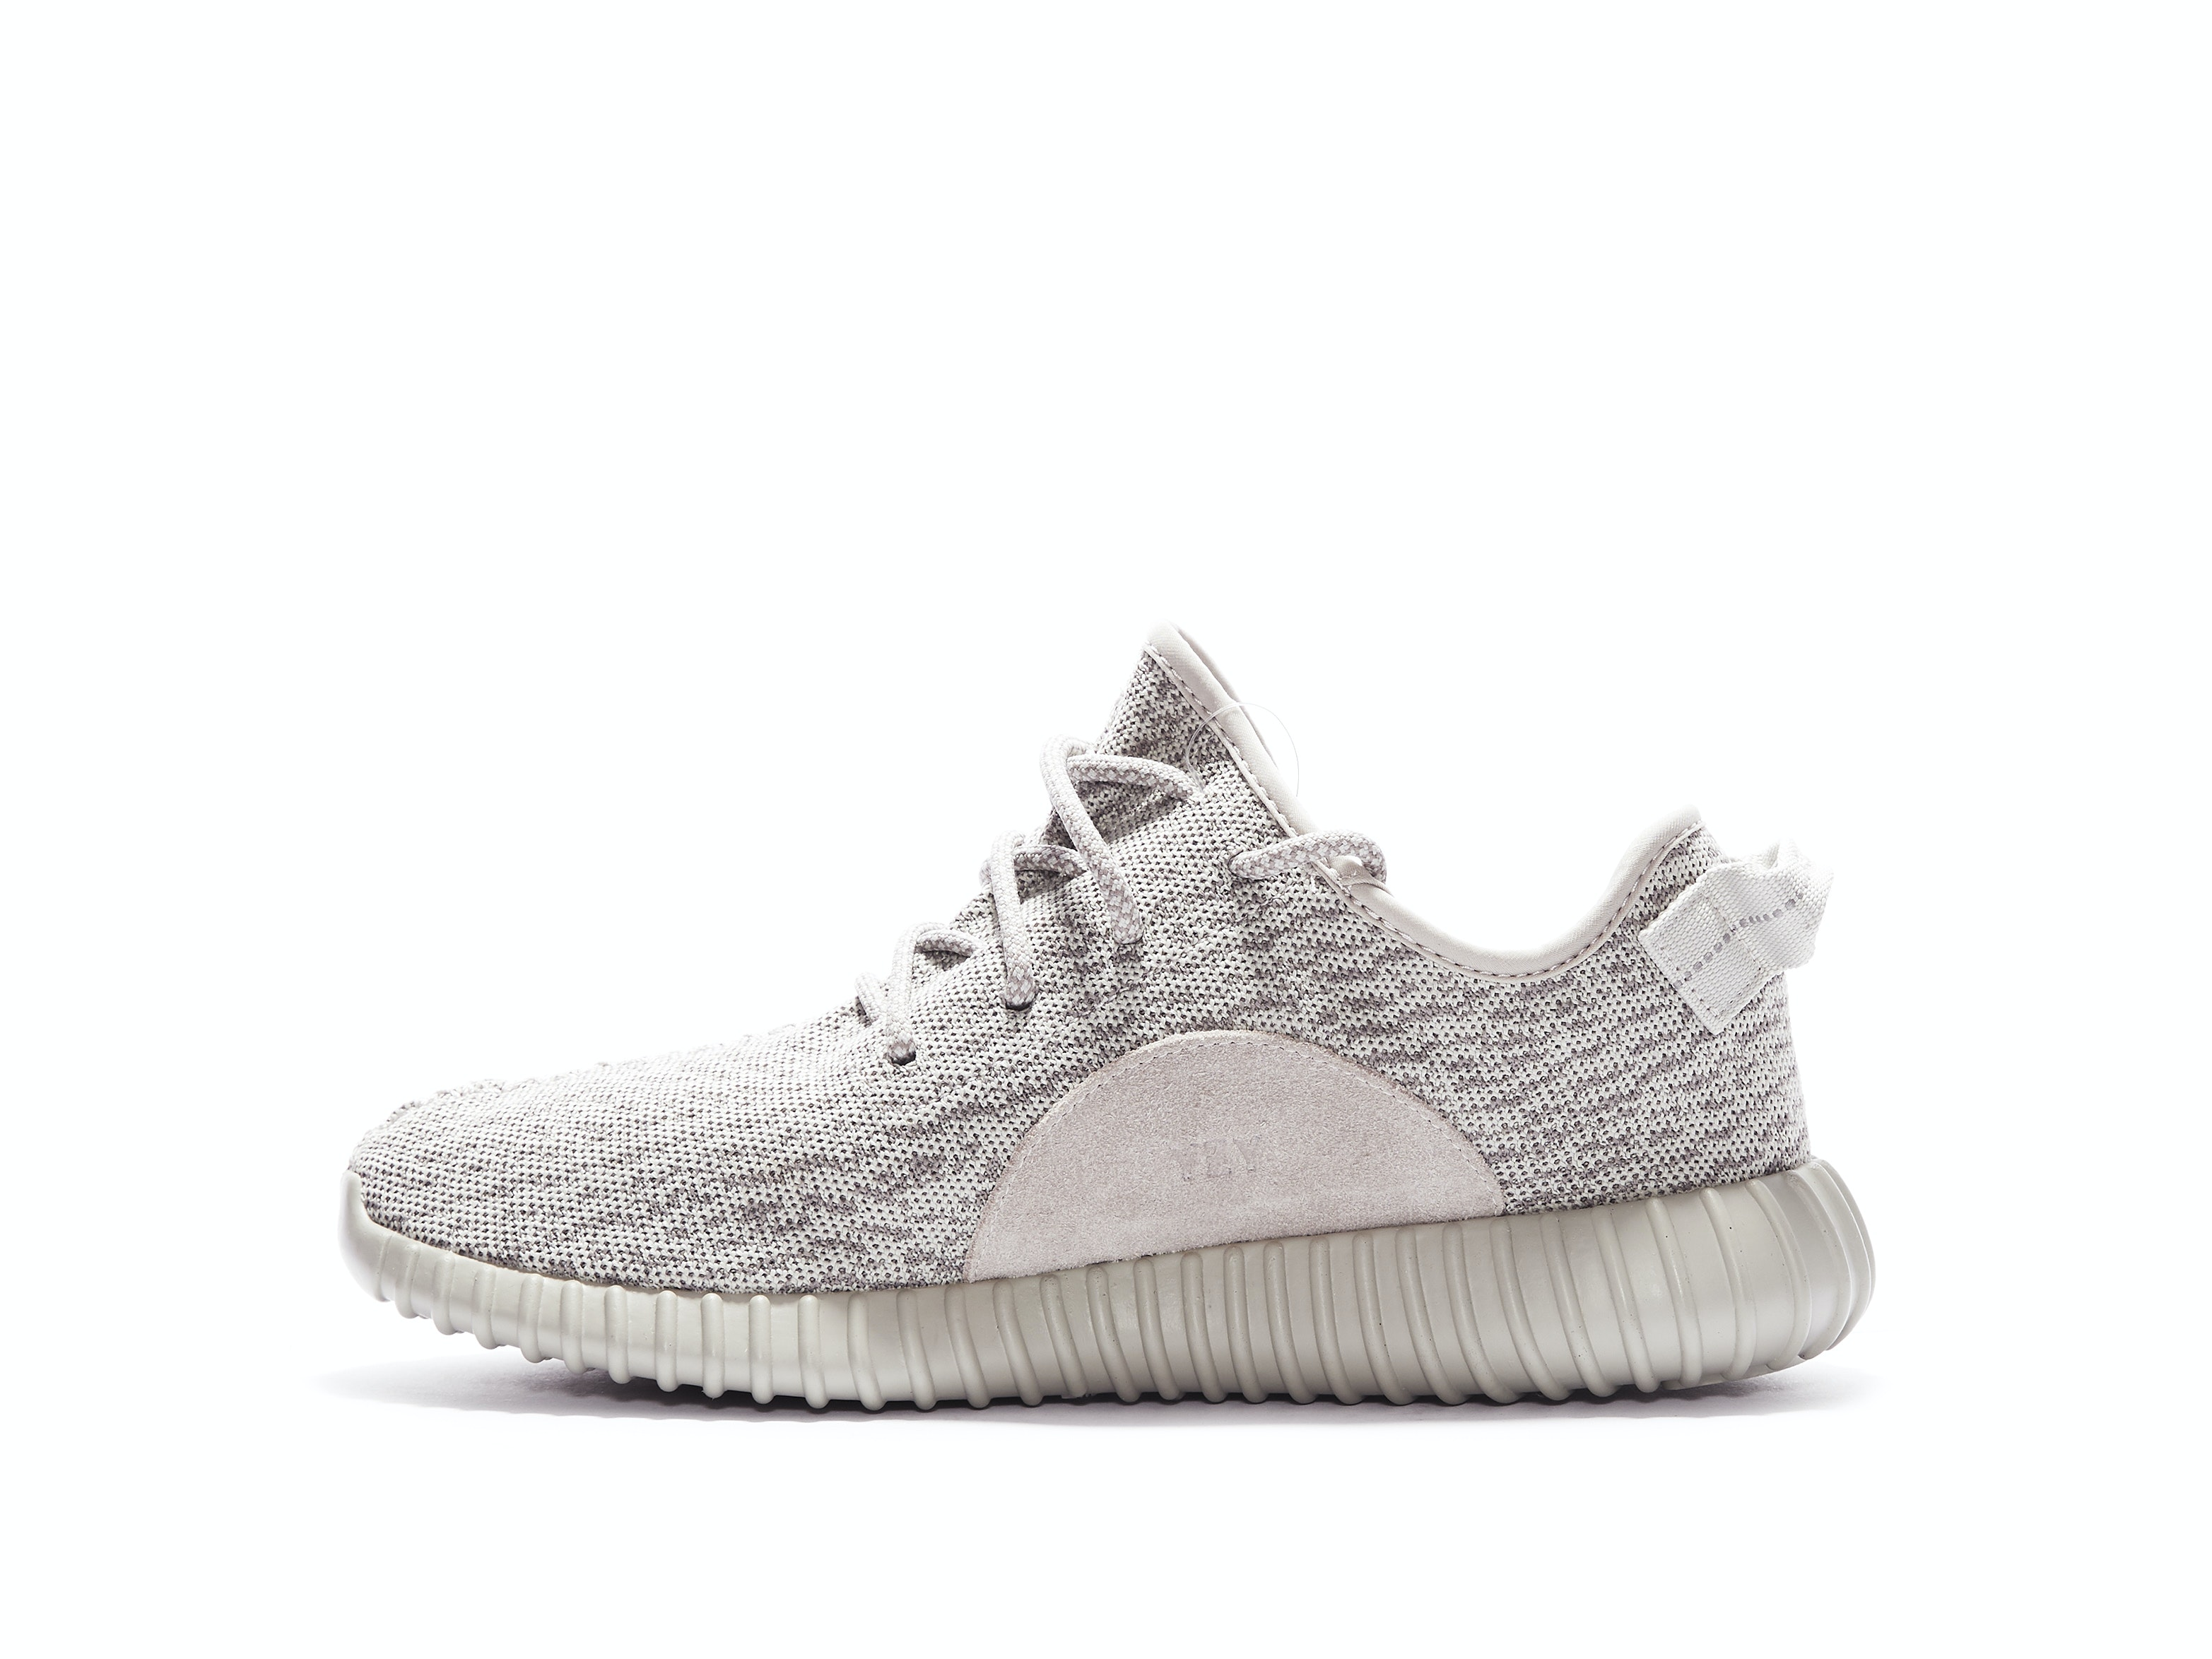 9ce1e9ceb Yeezy Boost 350 Moonrock. 100% AuthenticAvg Delivery Time  1-2 days. Adidas    AQ2660